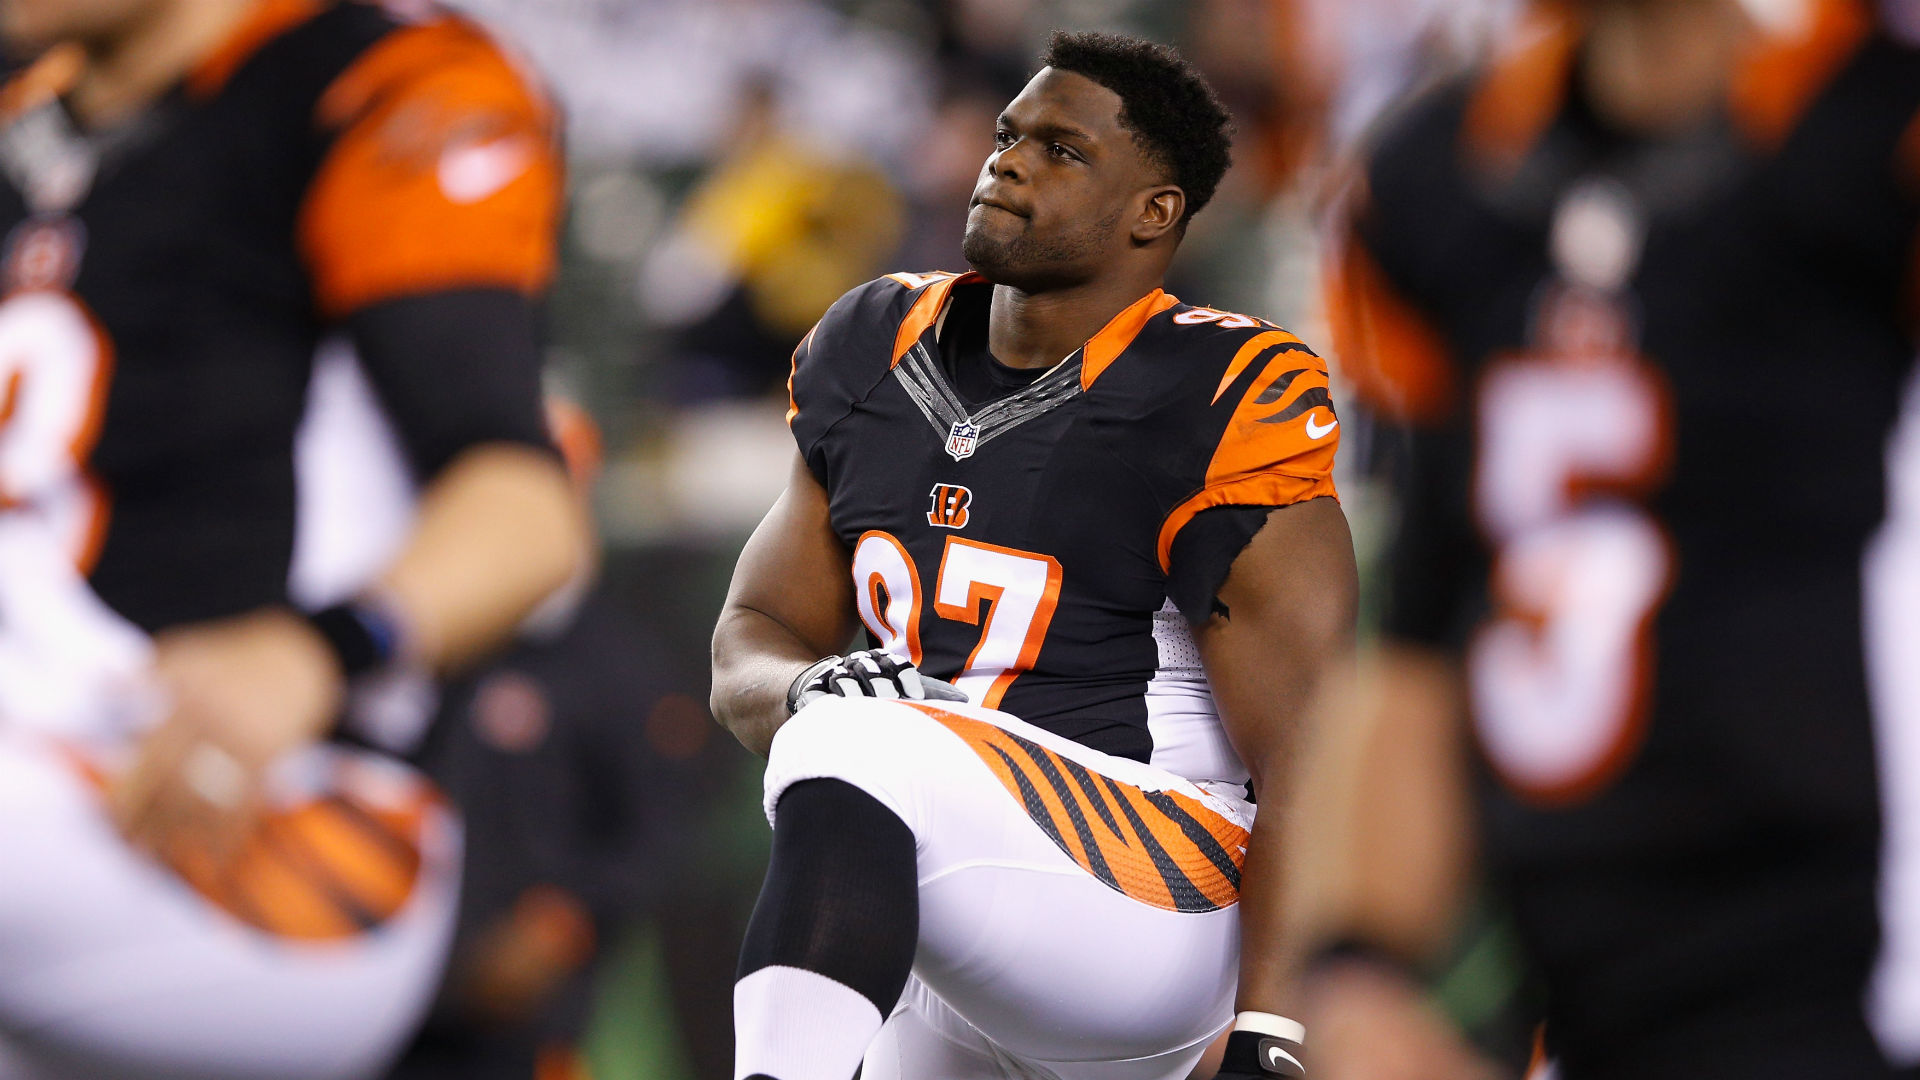 Bengals extend contracts of Geno Atkins and Carlos Dunlap, reports say